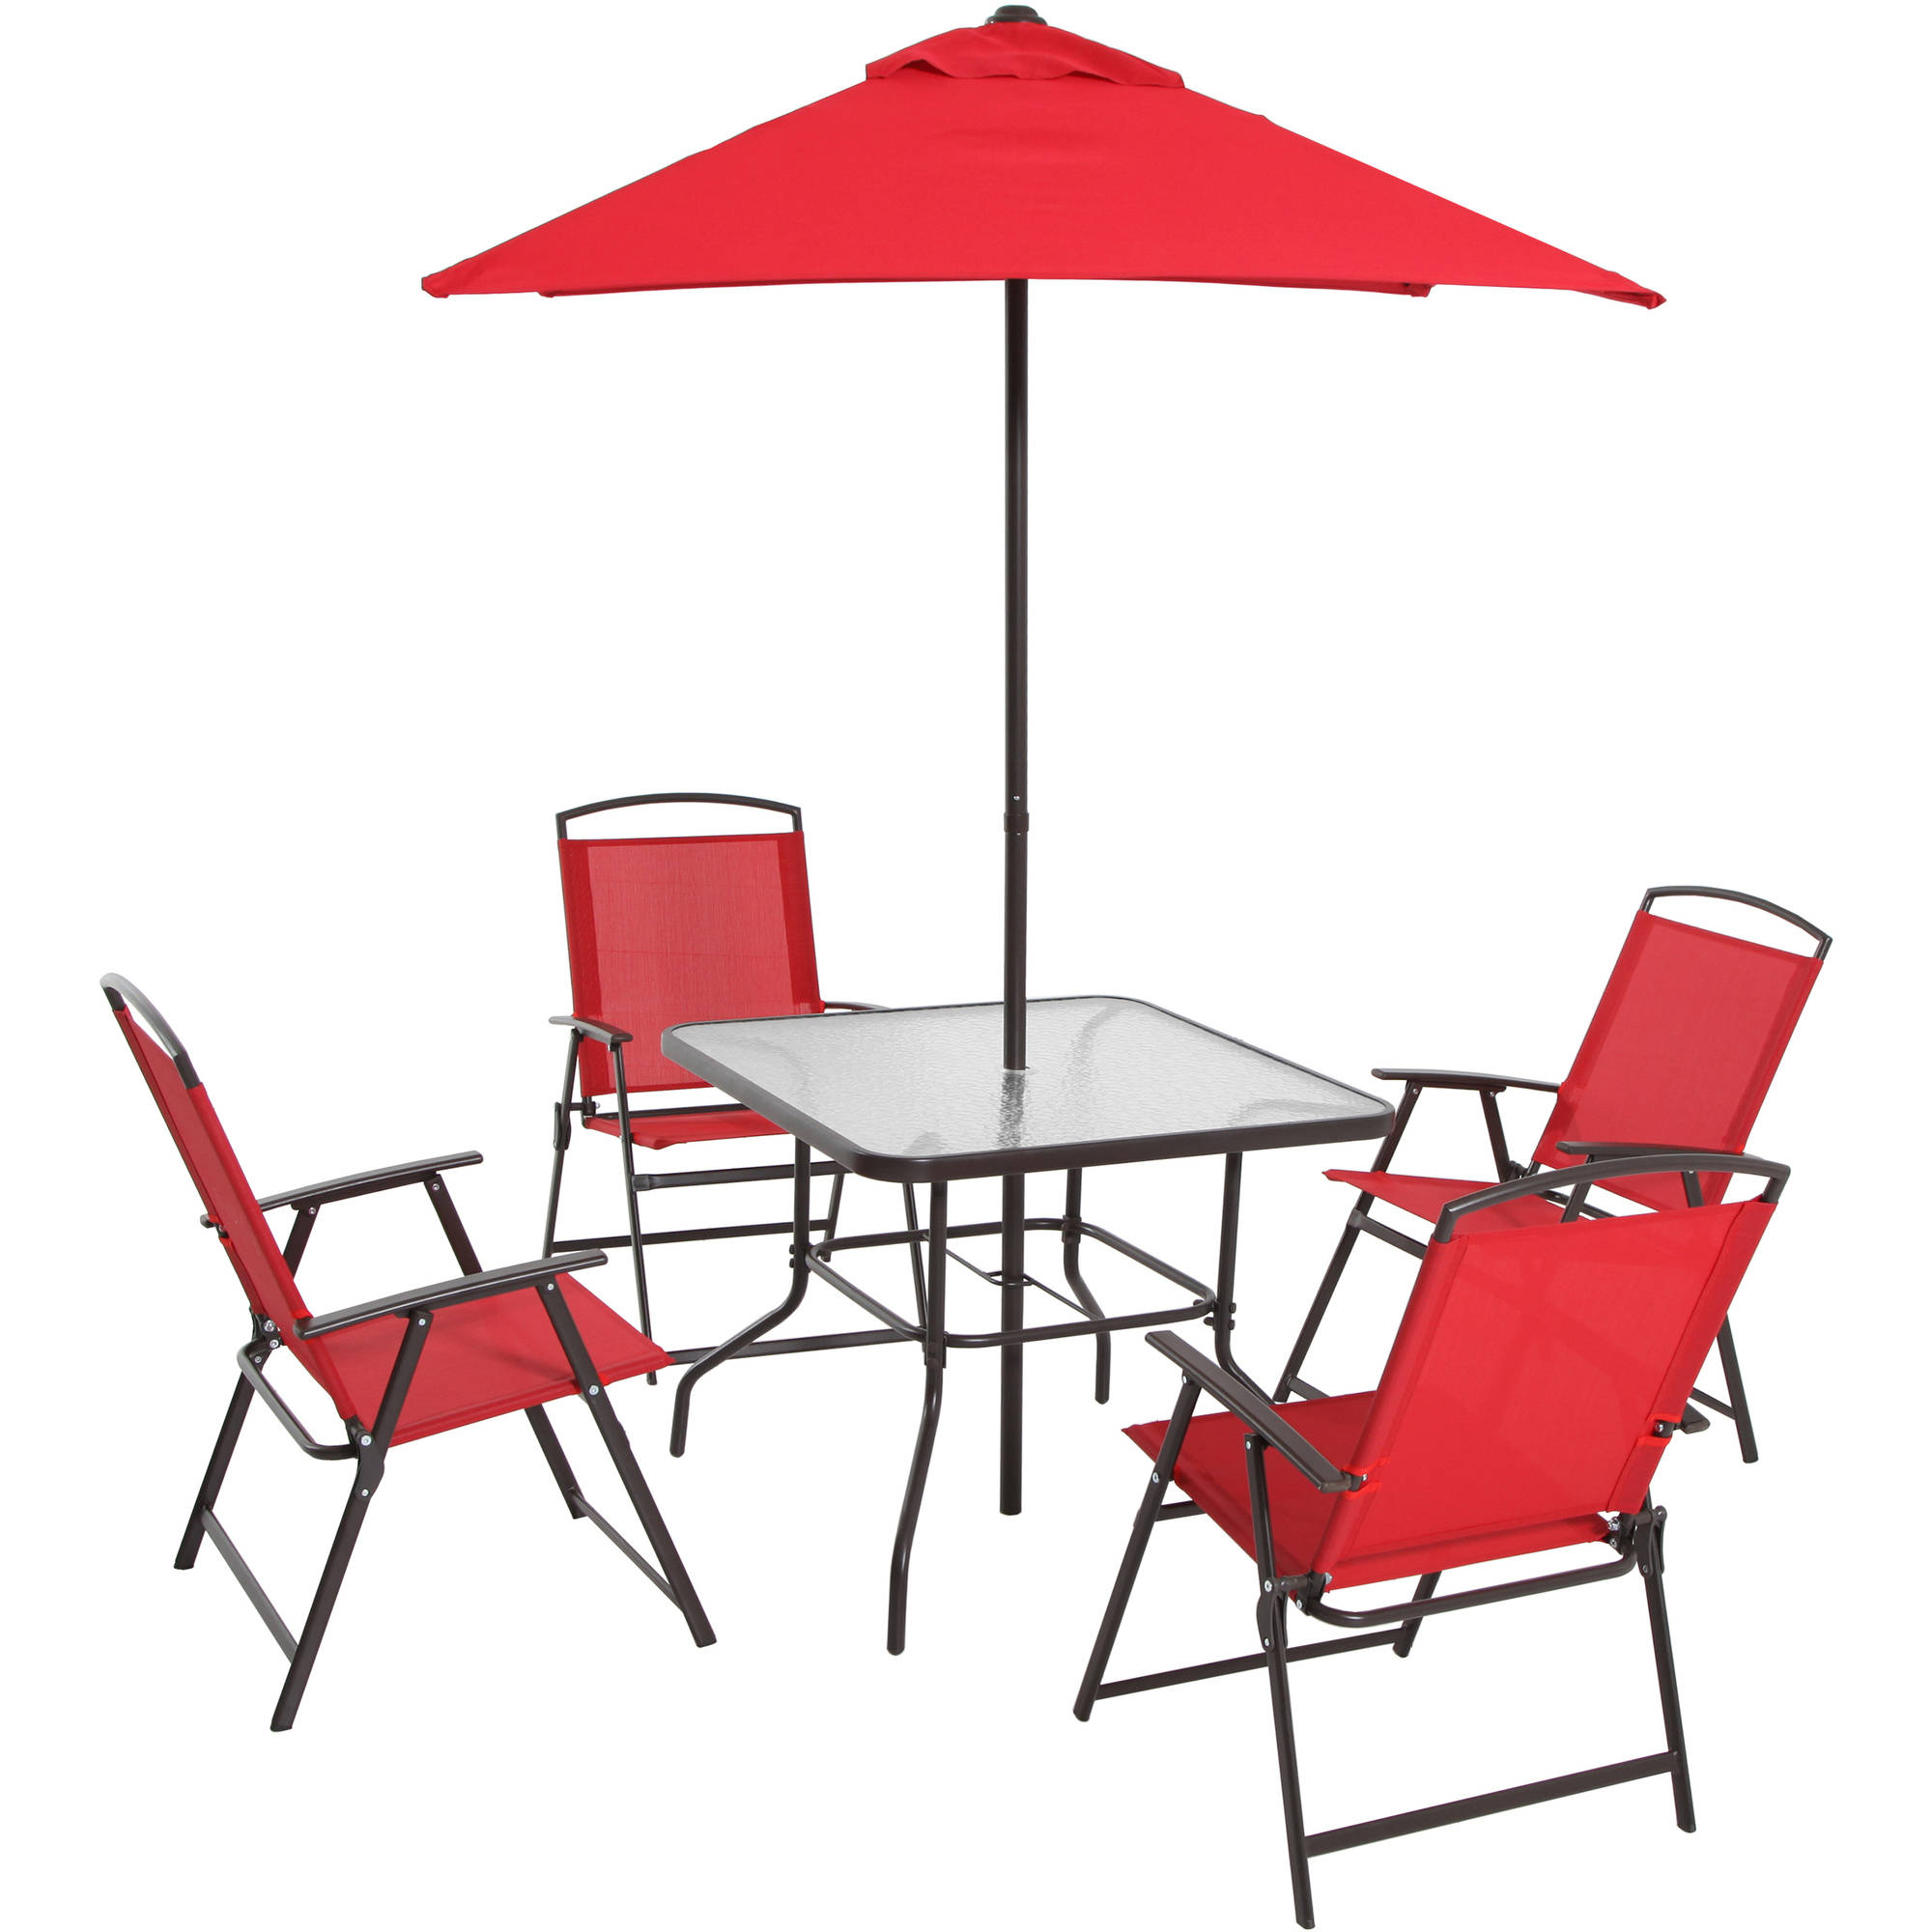 6 Piece Folding Dining Set Table Umbrella And 4 Chairs Patio Outdoor Red  Fabric